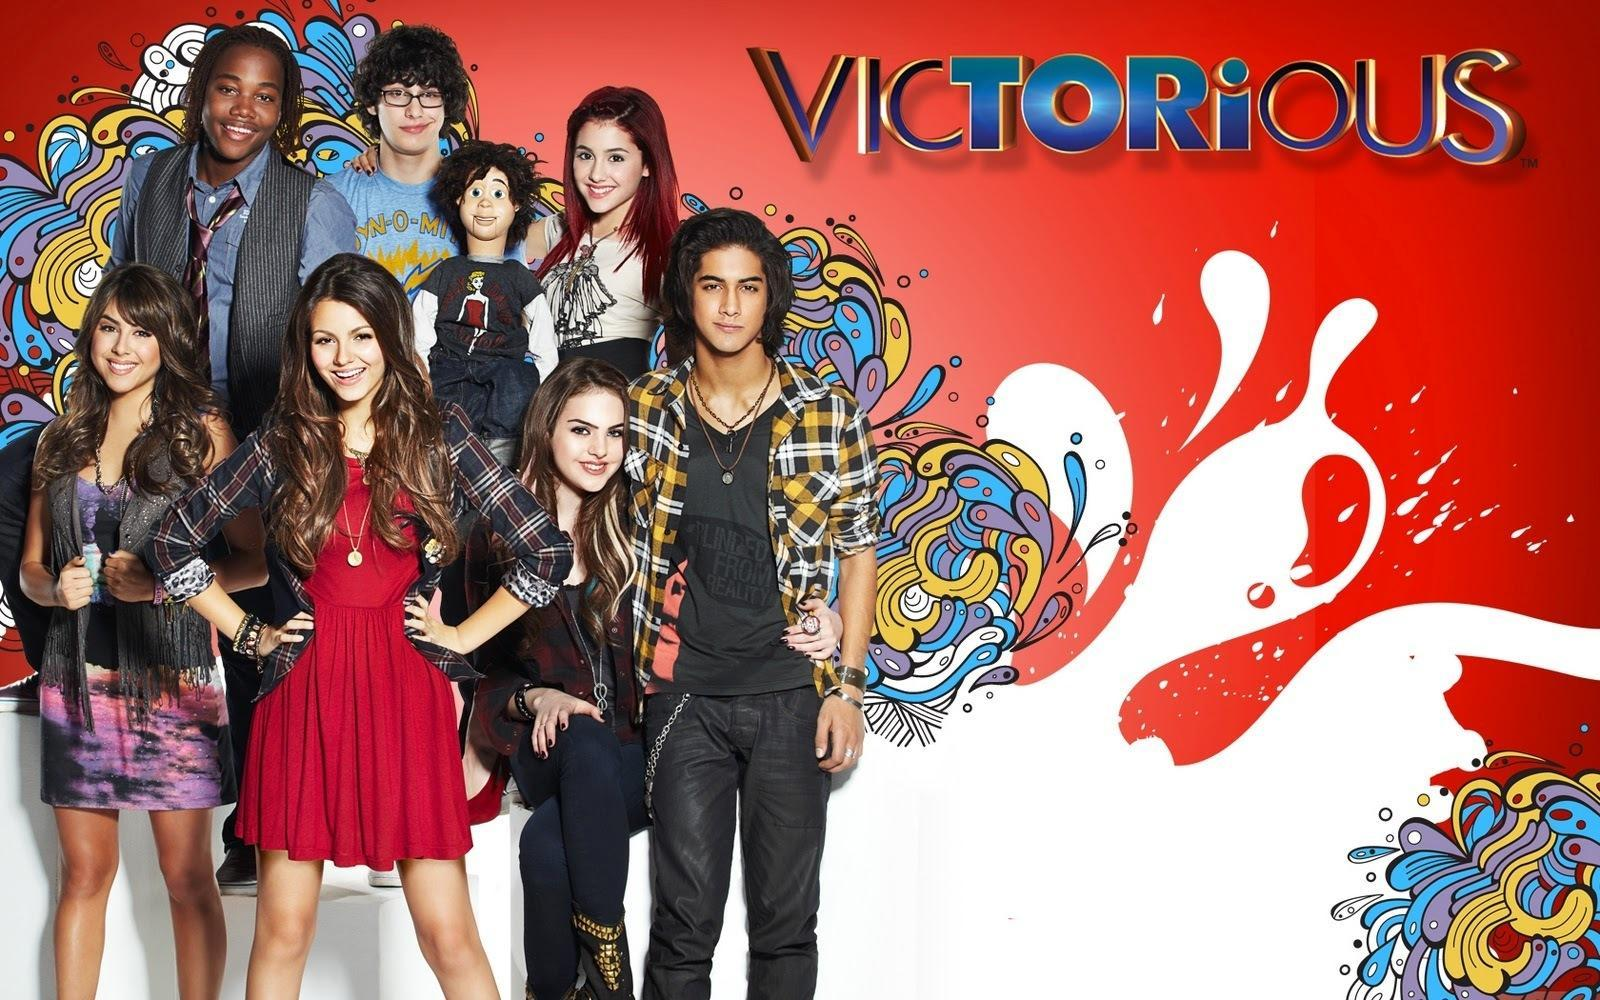 what victorious character are you? (1)